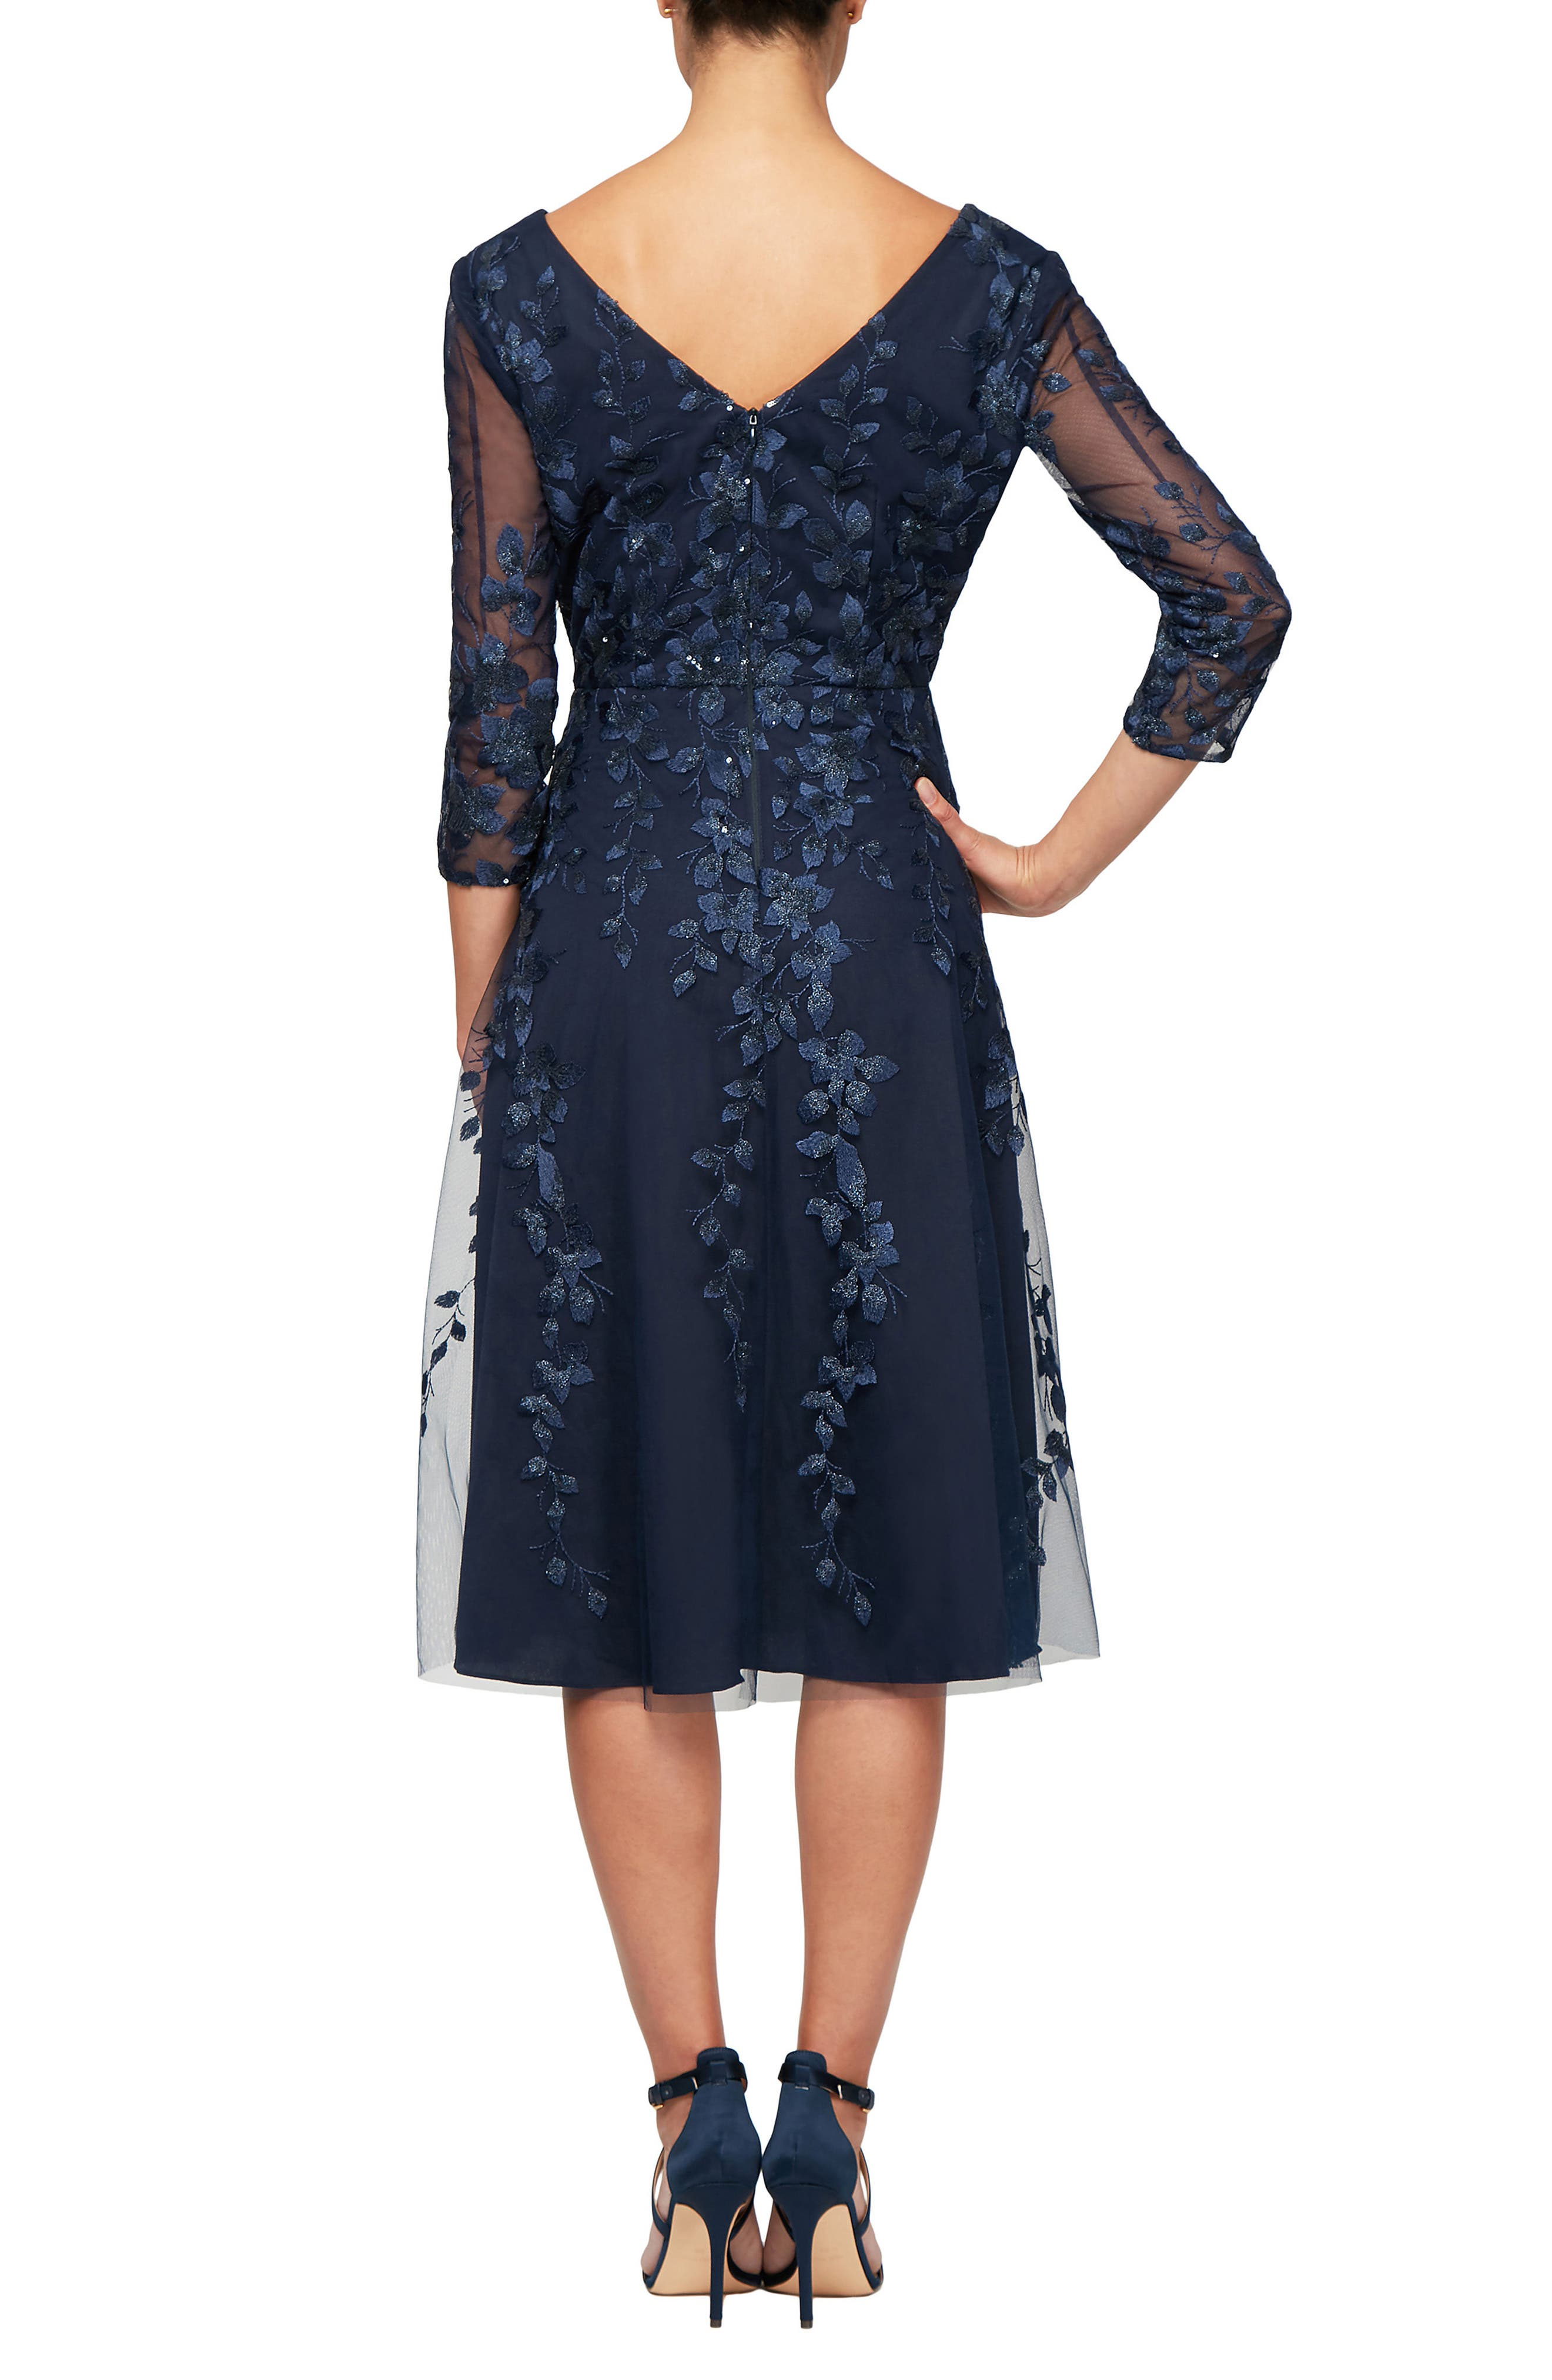 ALEX EVENINGS, V-Neck Embroidered Mesh Cocktail Dress, Alternate thumbnail 2, color, 410